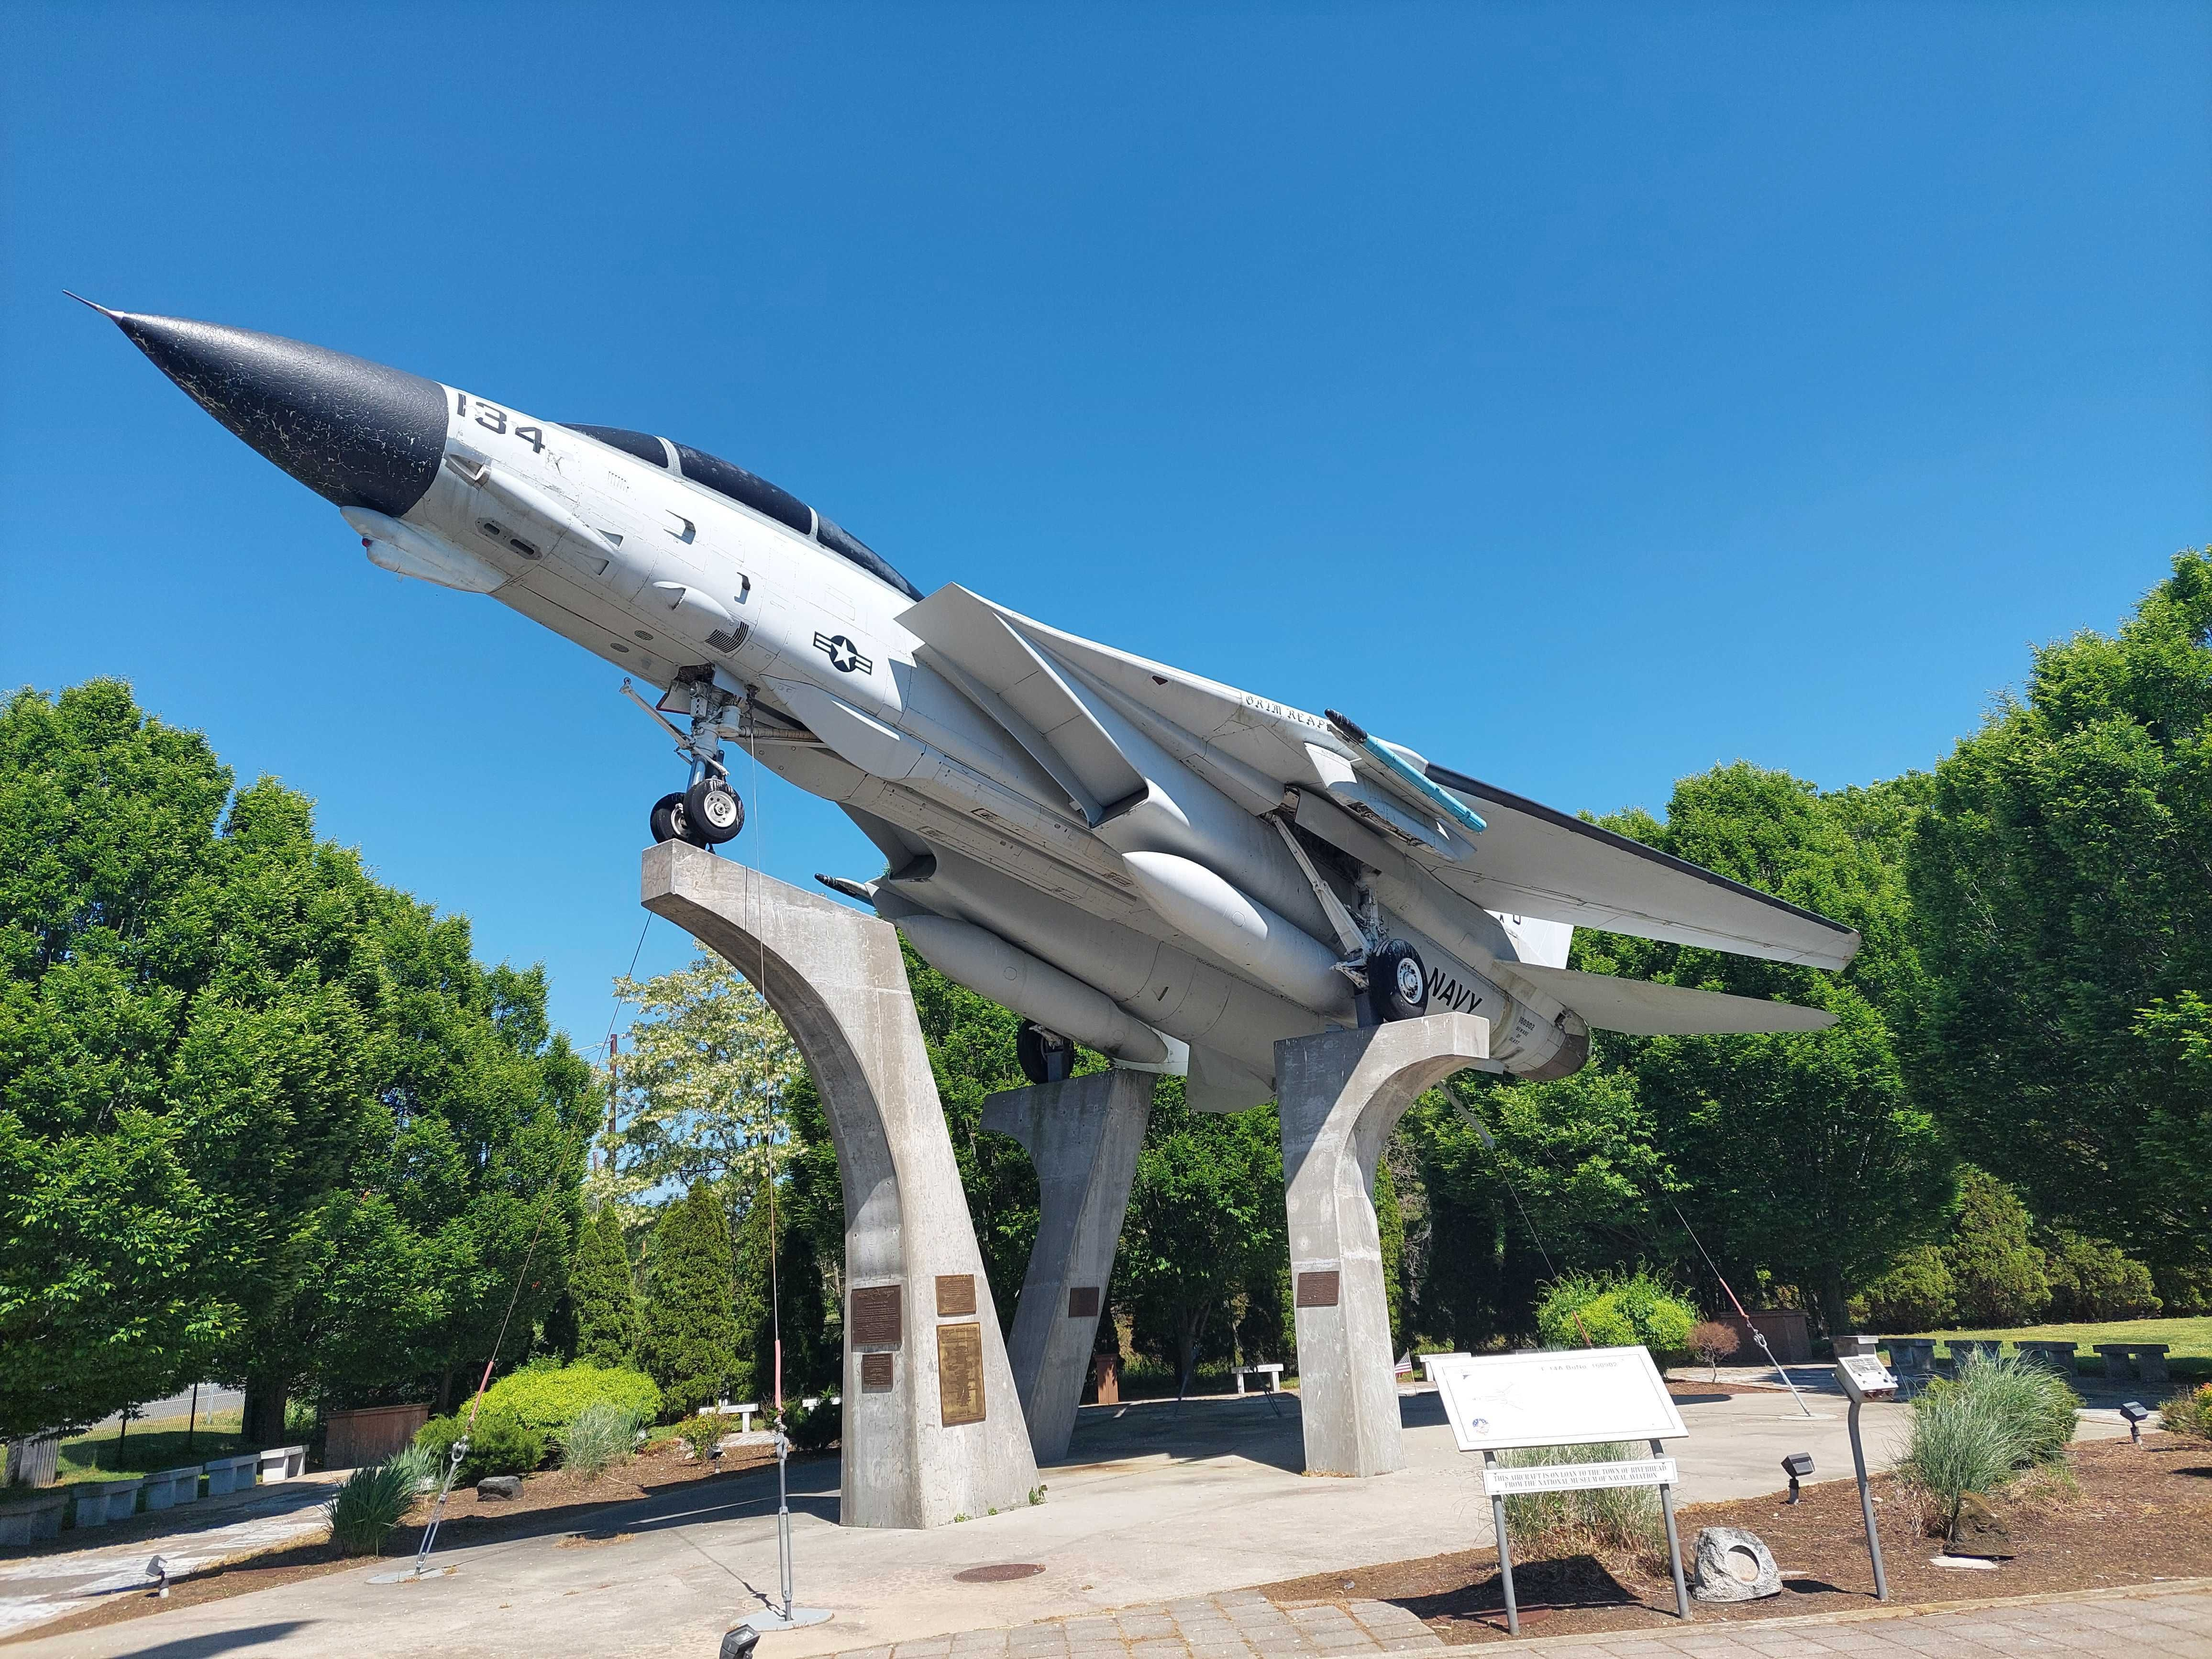 This F-14 Fighter Jet Was Left To Rot In A New York Public Park